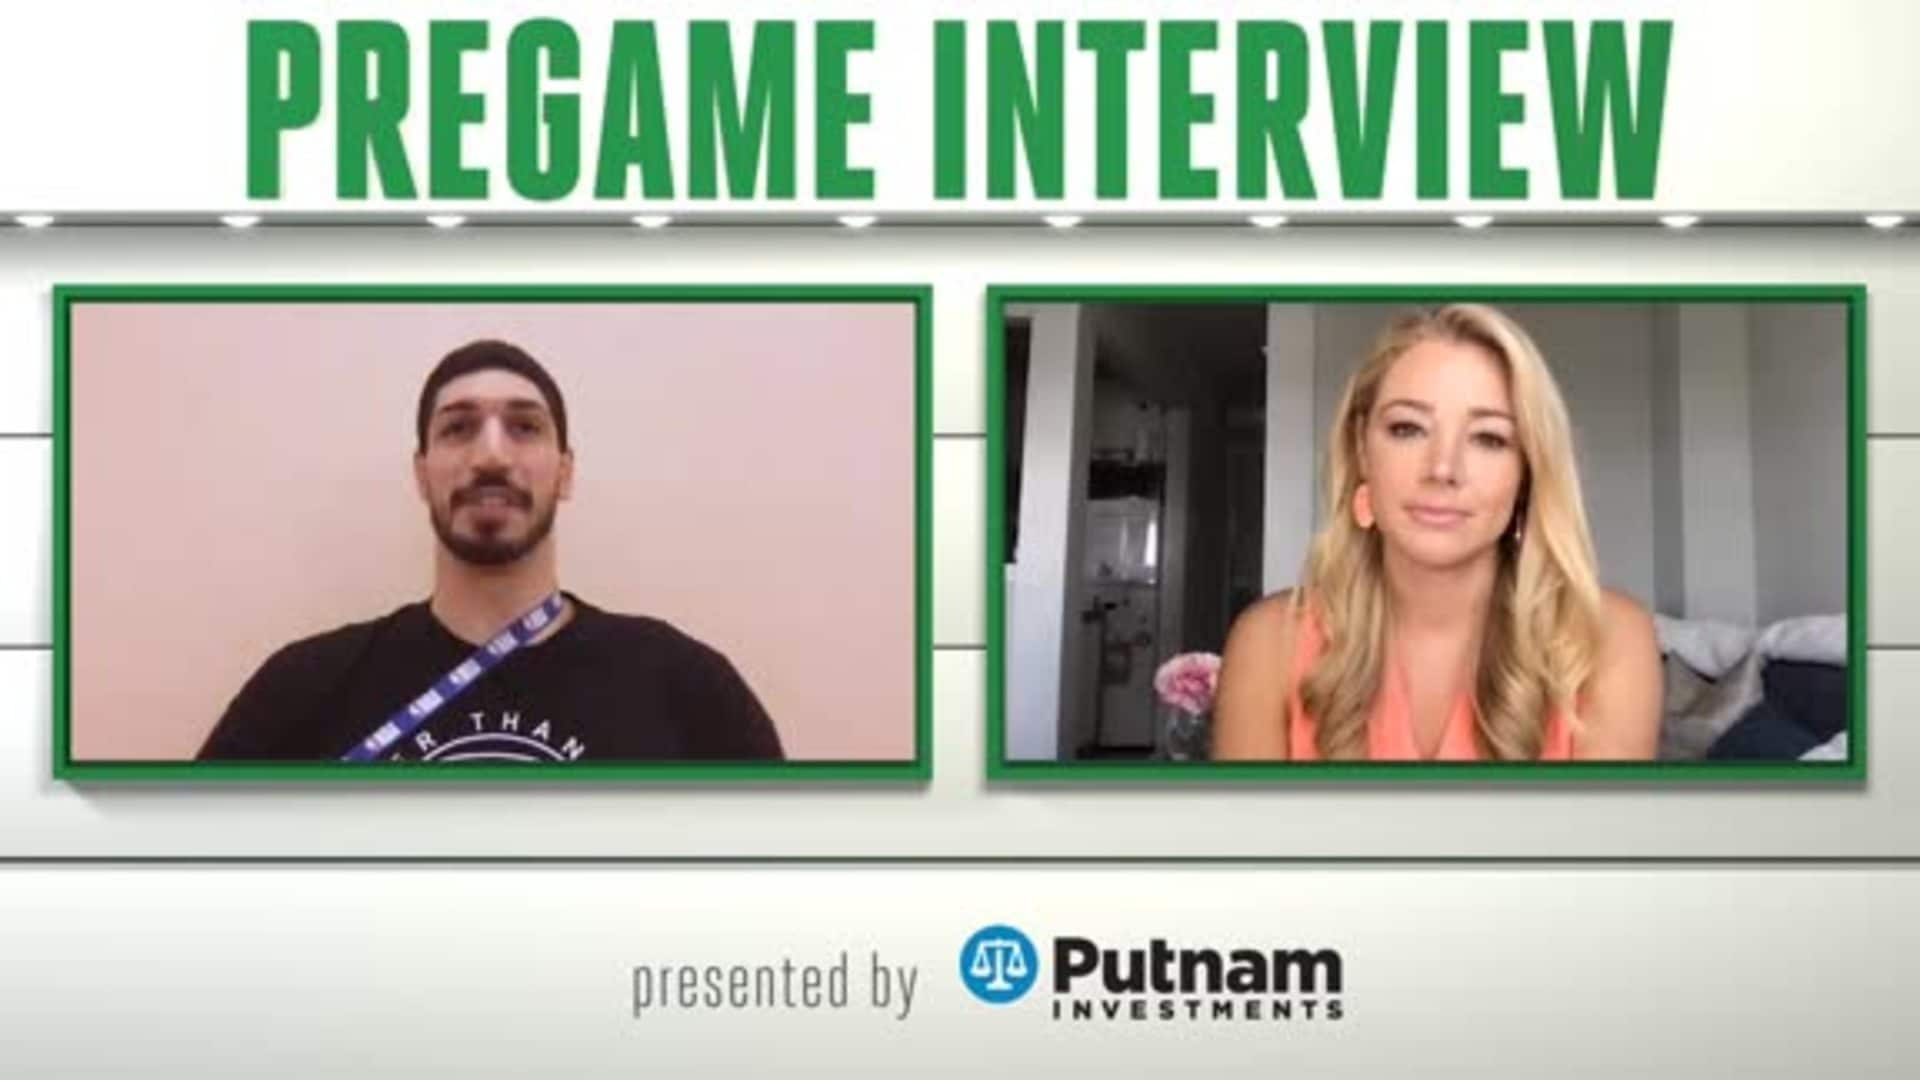 8/5 Putnam Pregame Interview: 'Bring The Energy'